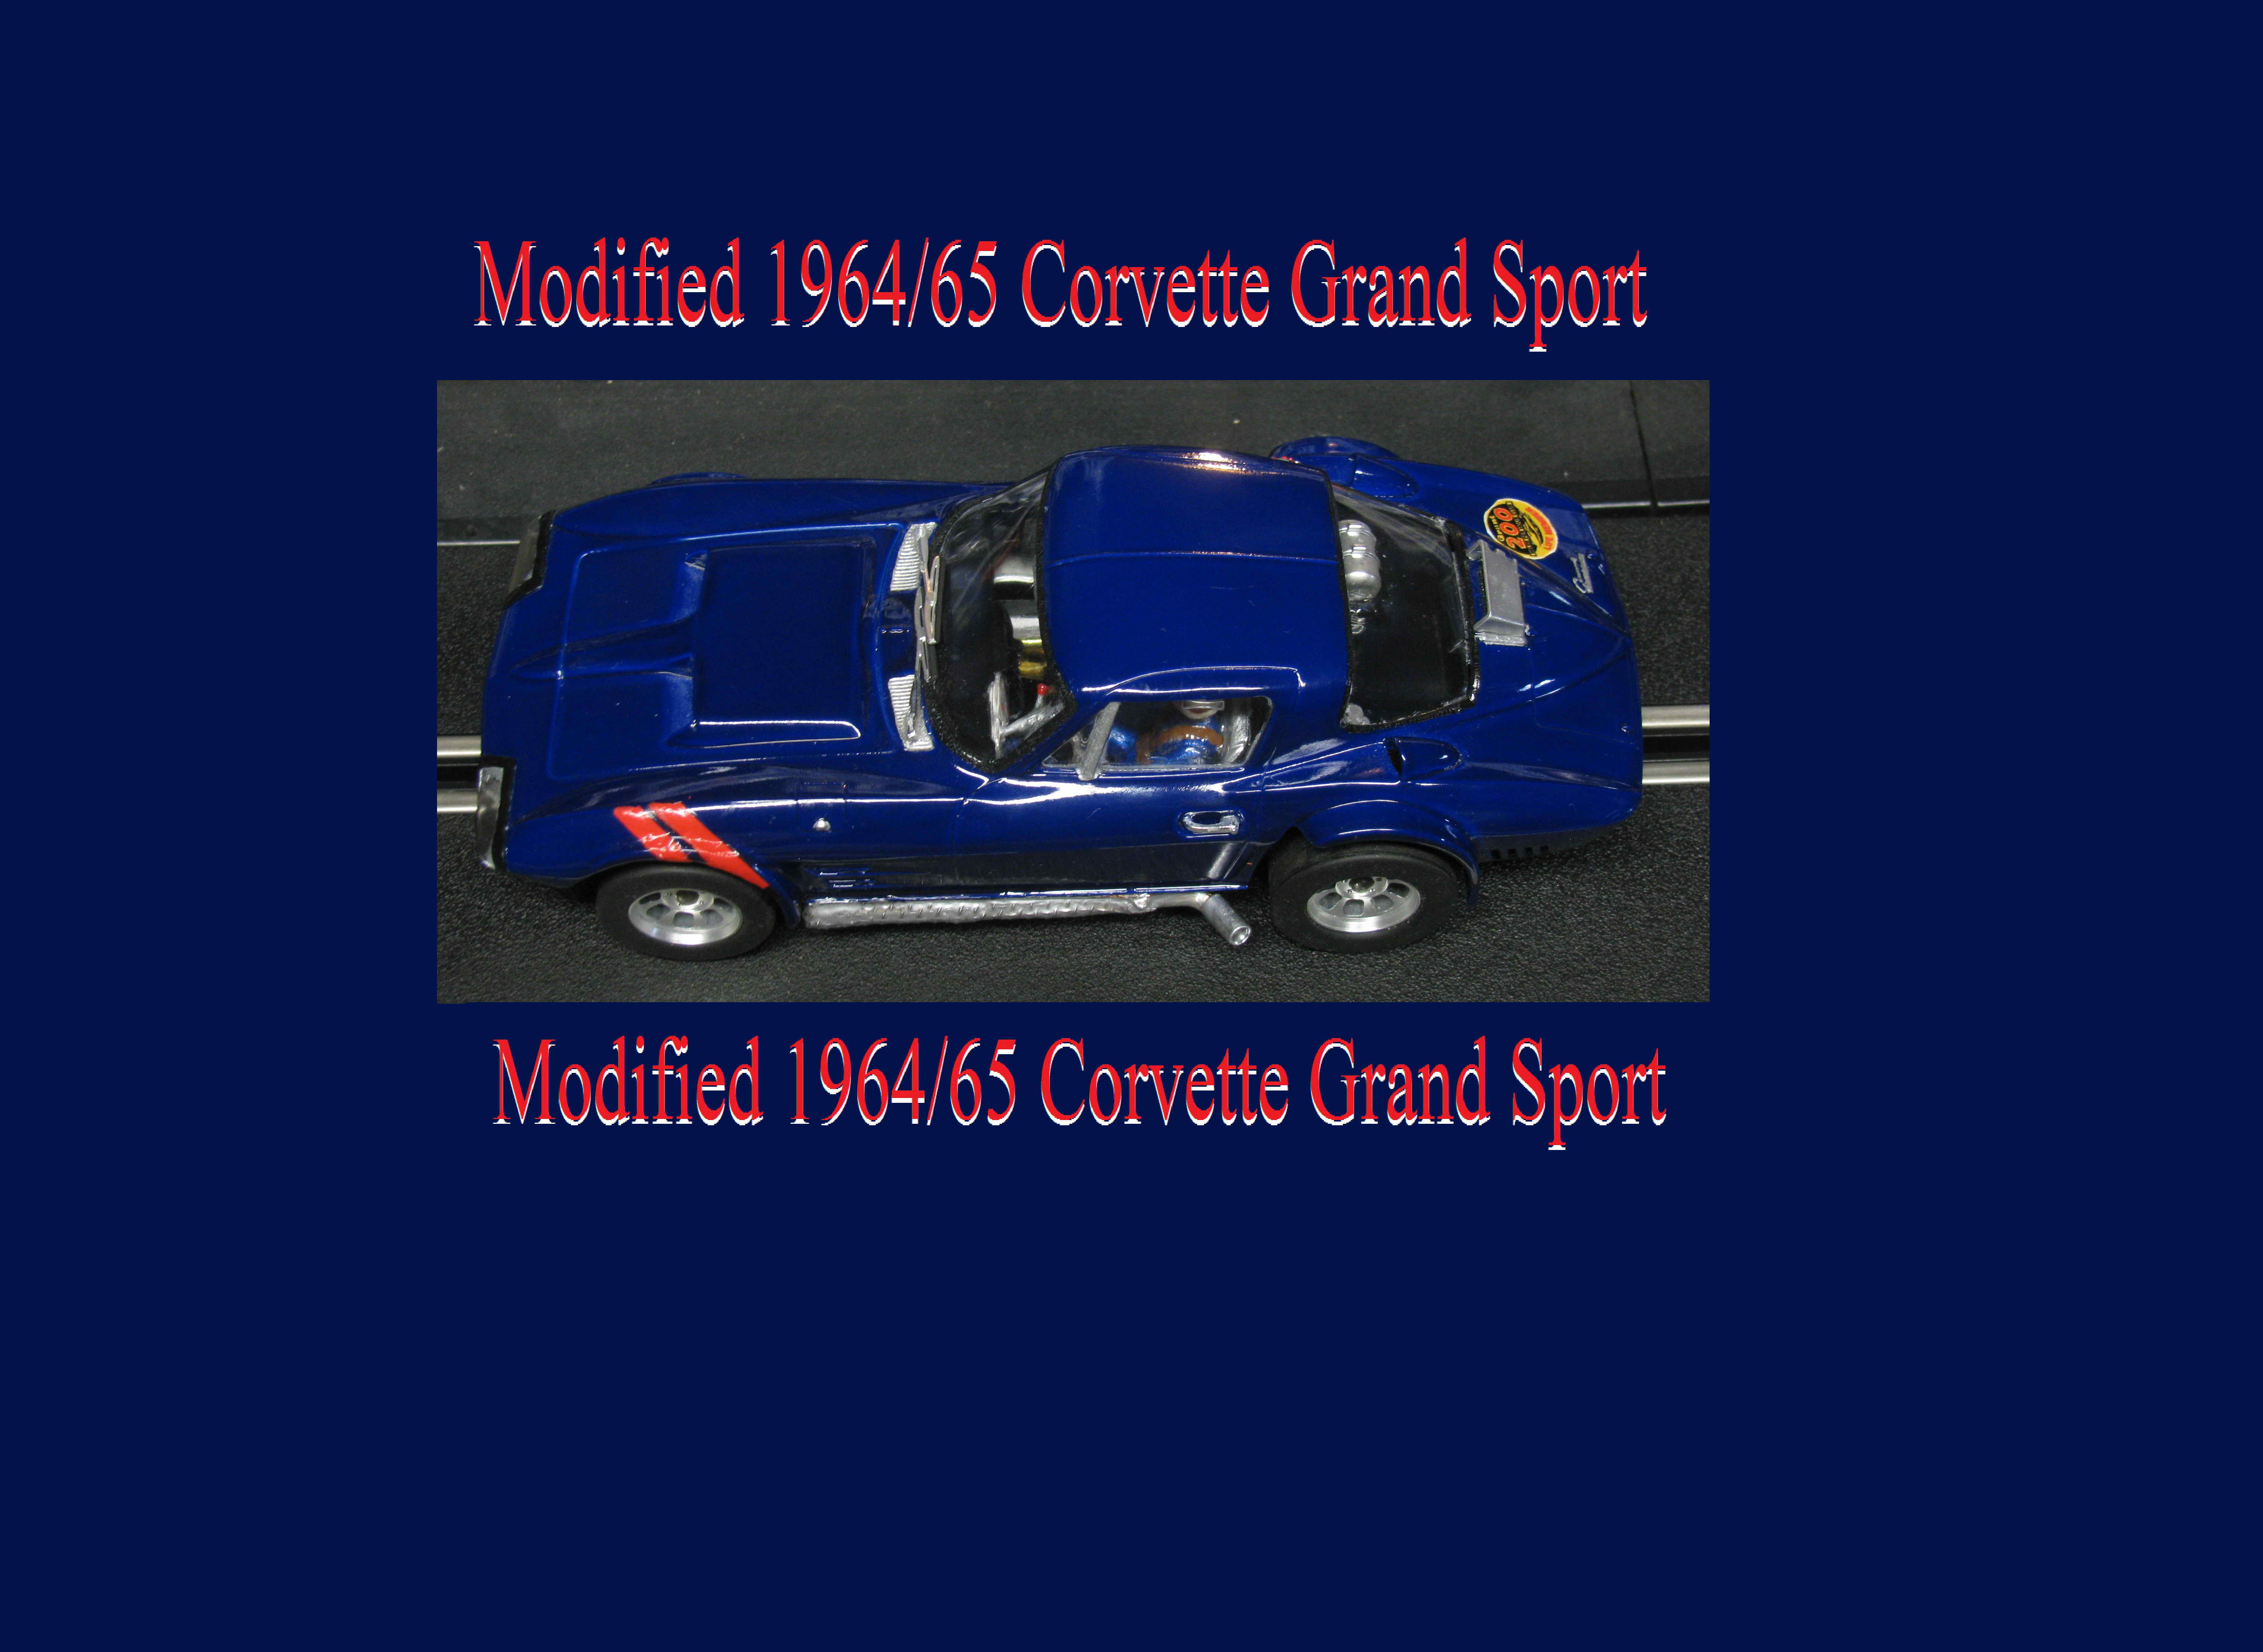 * SOLD * *RESERVED FOR CHRIS, Special Combo Price* *SALE, Normally $359 SAVE $110* Vintage 1964/65 Corvette Grand Sport slot car Bridgehampton Blue Poly 1/24 scale